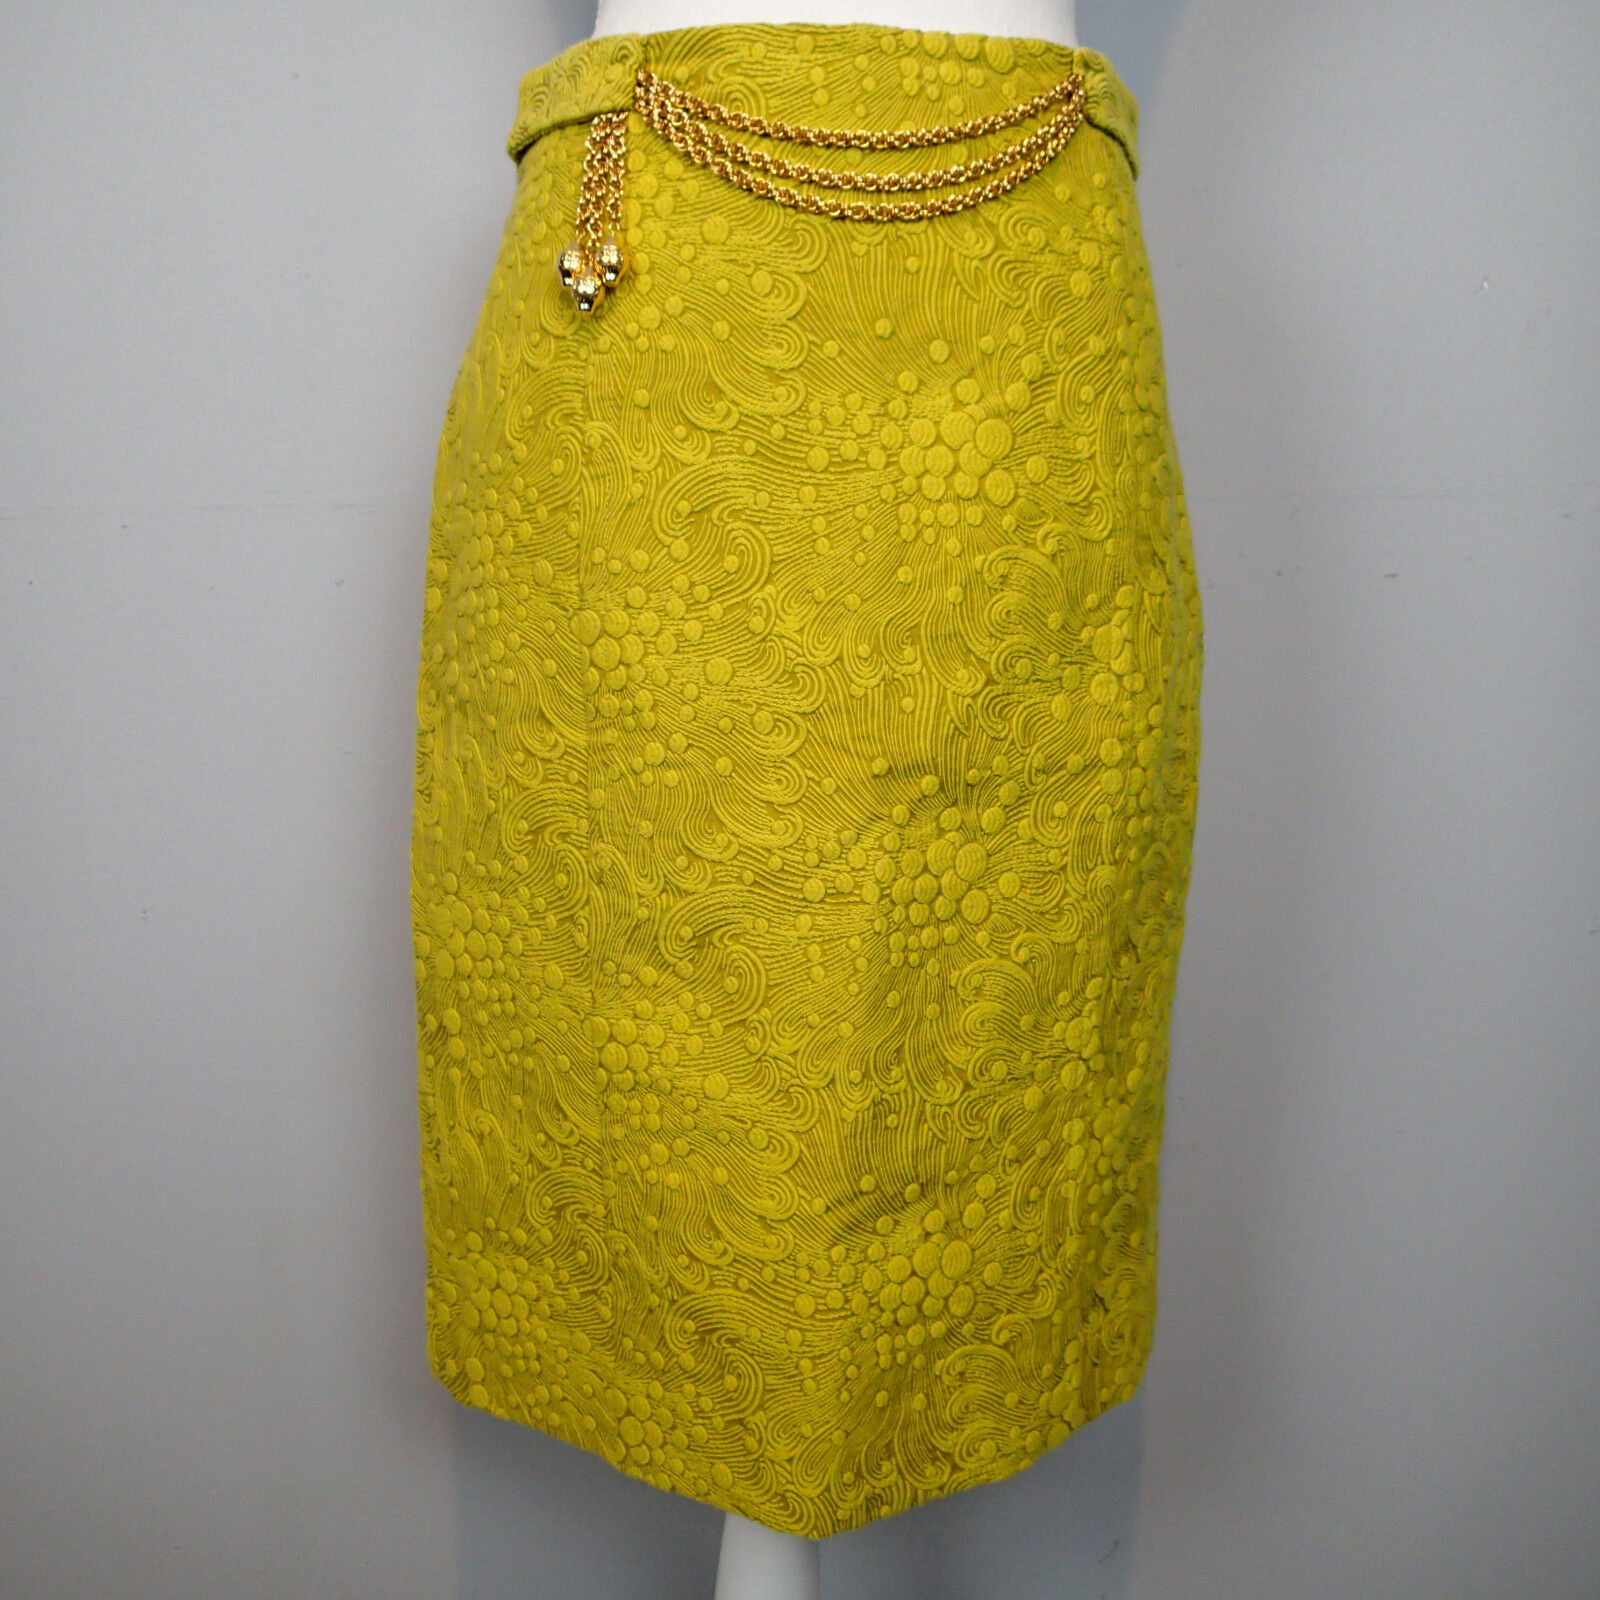 Milly New York Brocade Pencil Skirt gold Chain Straight SZ 6 YELLOW EMBOSSED b5